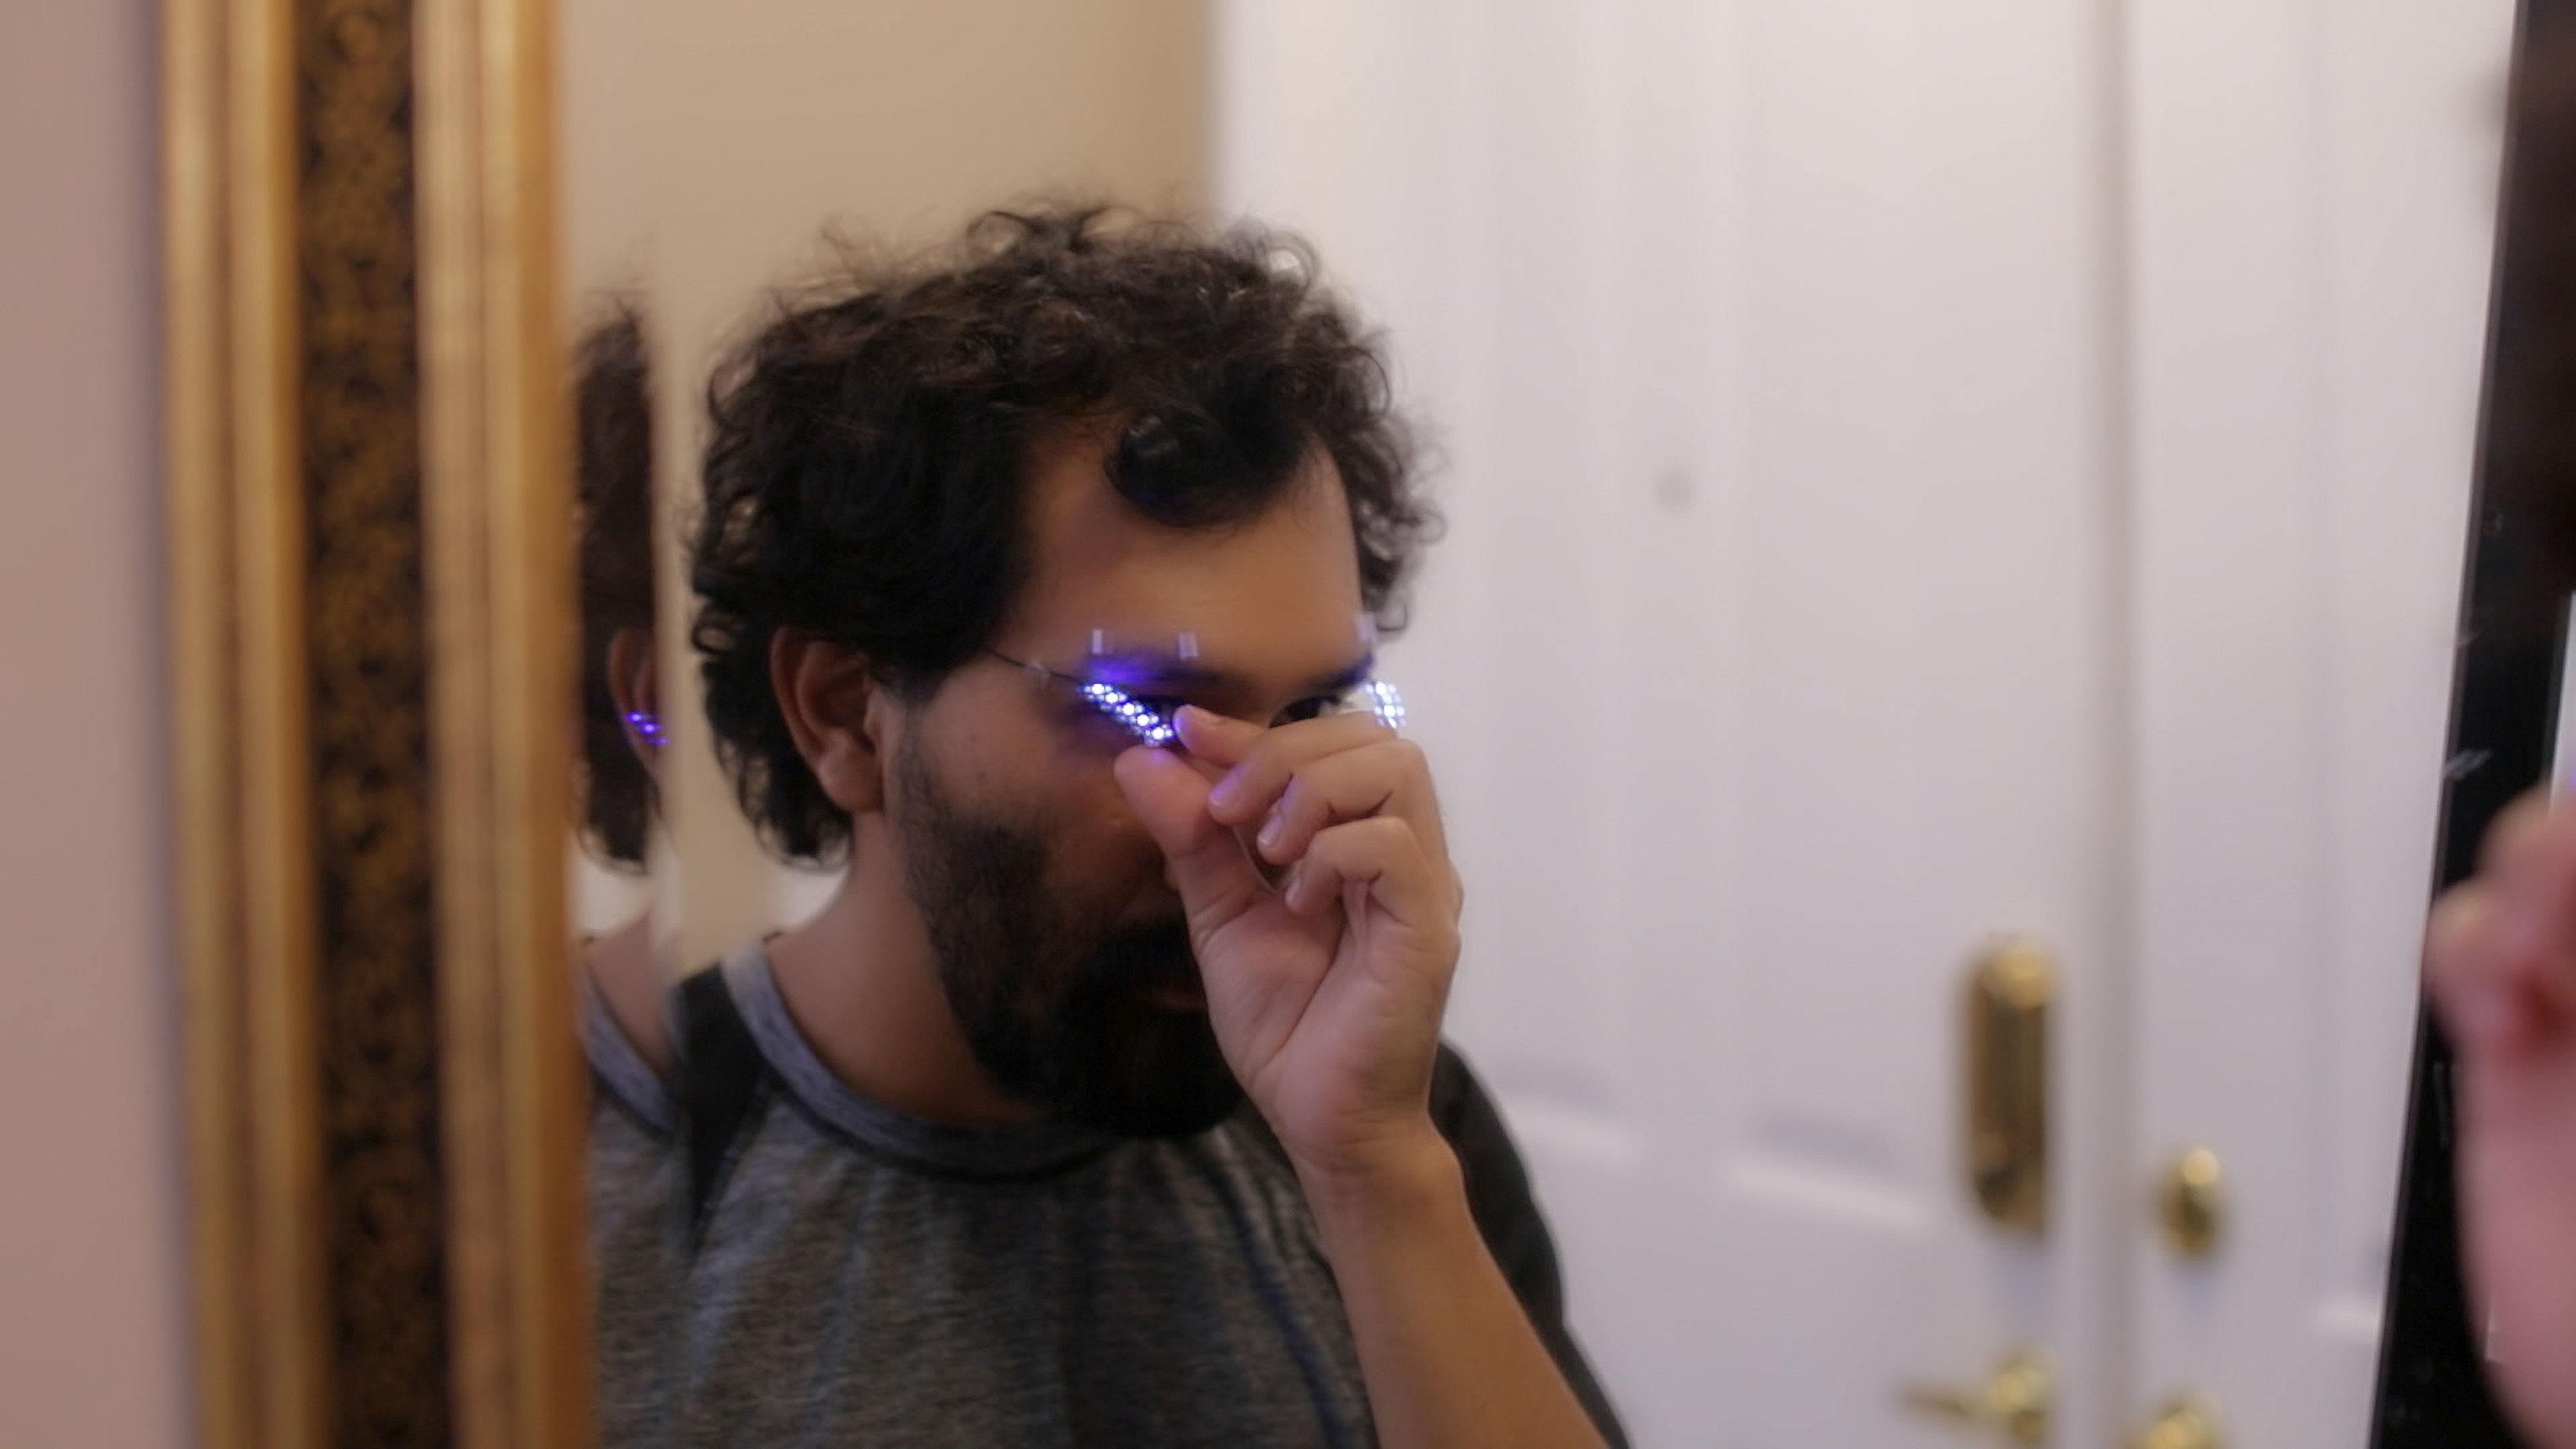 leds_apply-to-face.jpg